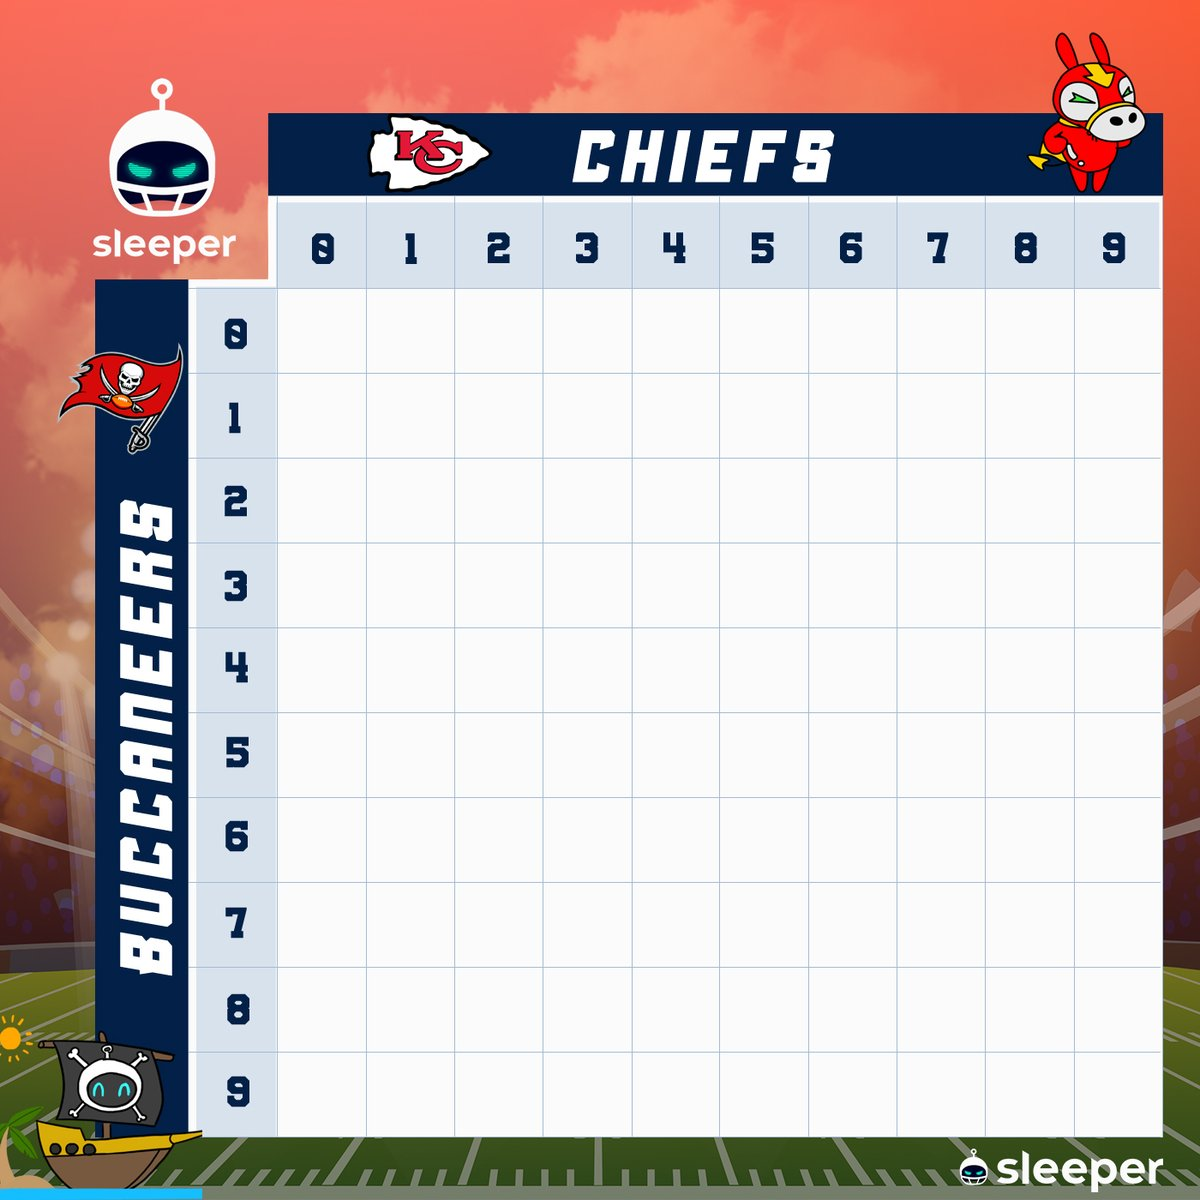 📢 Want in on Sleeper Squares for the #SuperBowl? 🏈   We're giving away Sleeper Tees and a Sleeper Hoodie, along with 2,500 cookies and some mascots! 🤯  Retweet with your Sleeper username for your chance! 🤞  #ChiefsKingdom #GoBucs